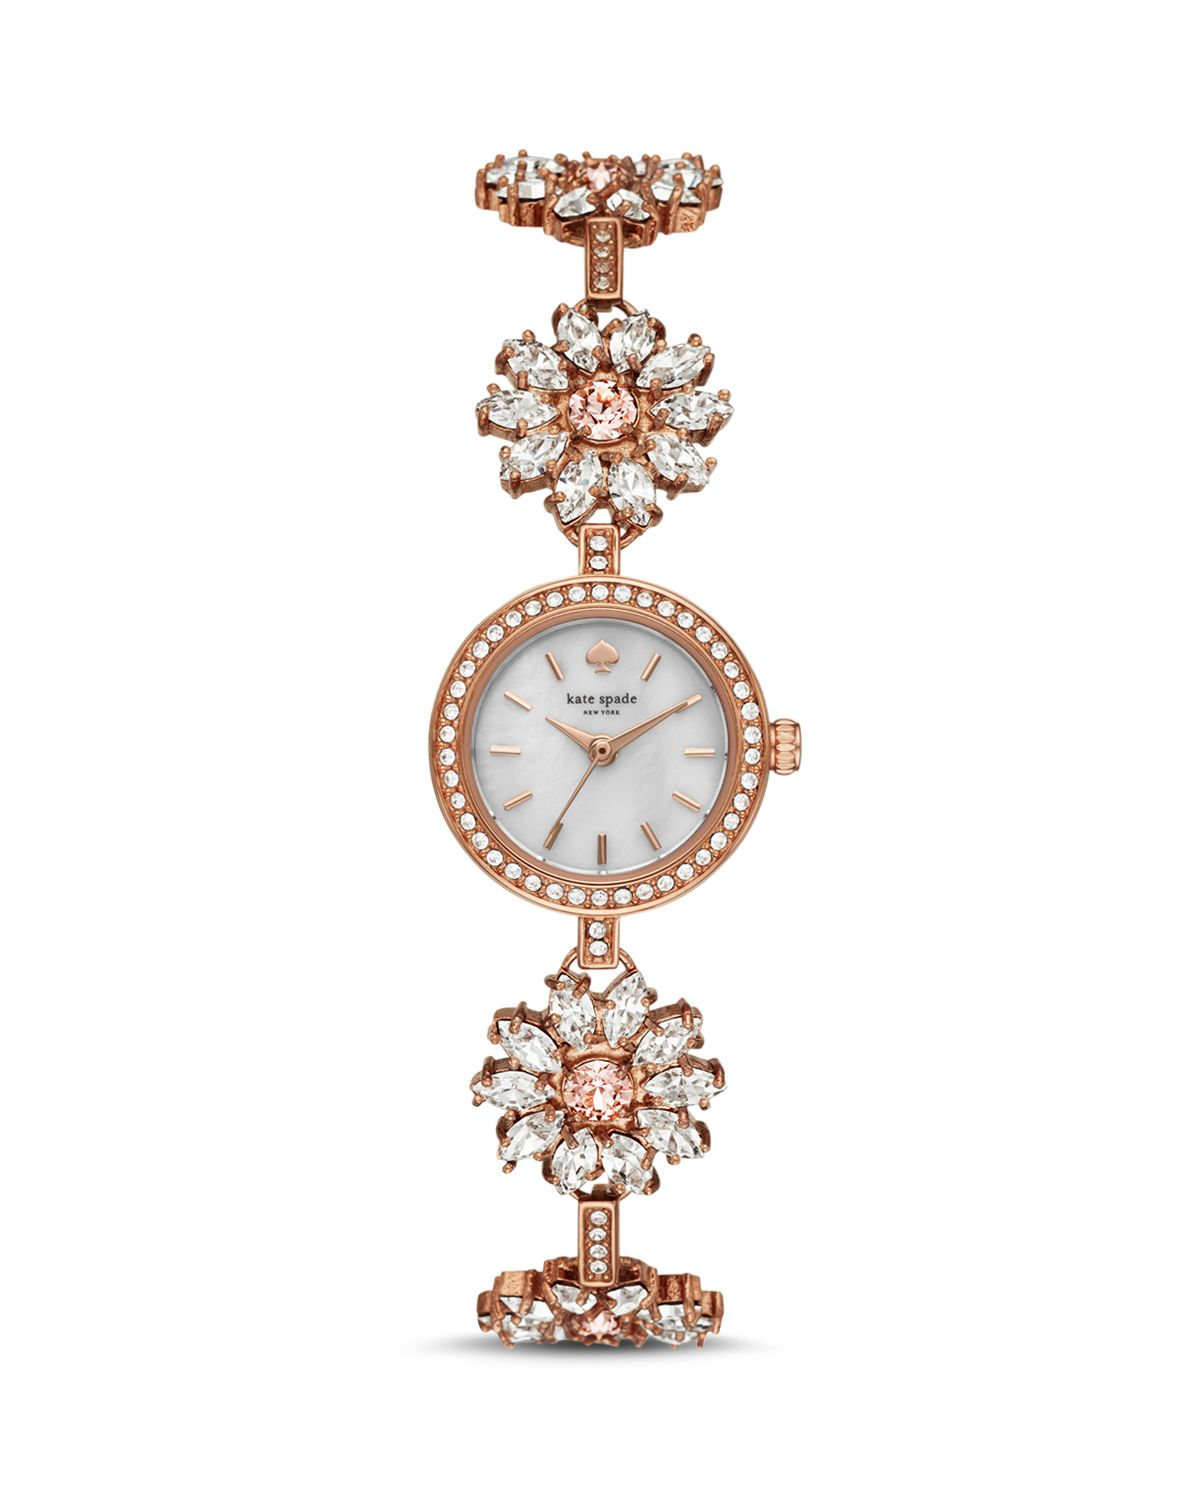 Daisy Chain Watch, 20mm by Kate Spade New York